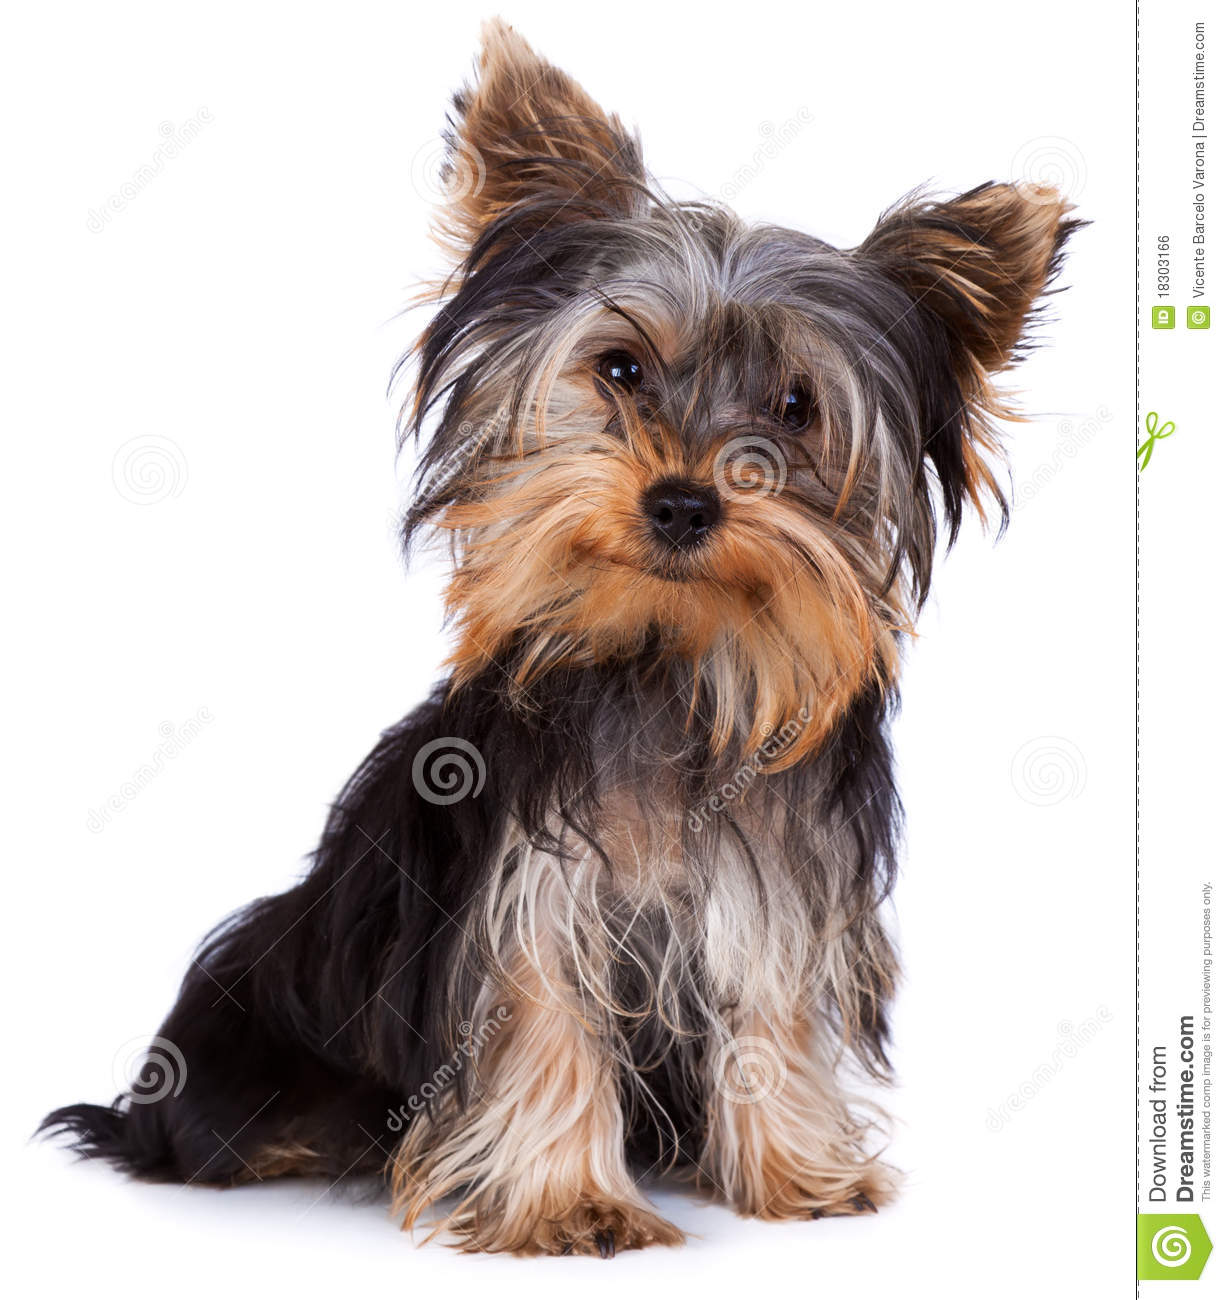 yorkie terrier picture yorkshire terrier royalty free stock image image 18303166 9647